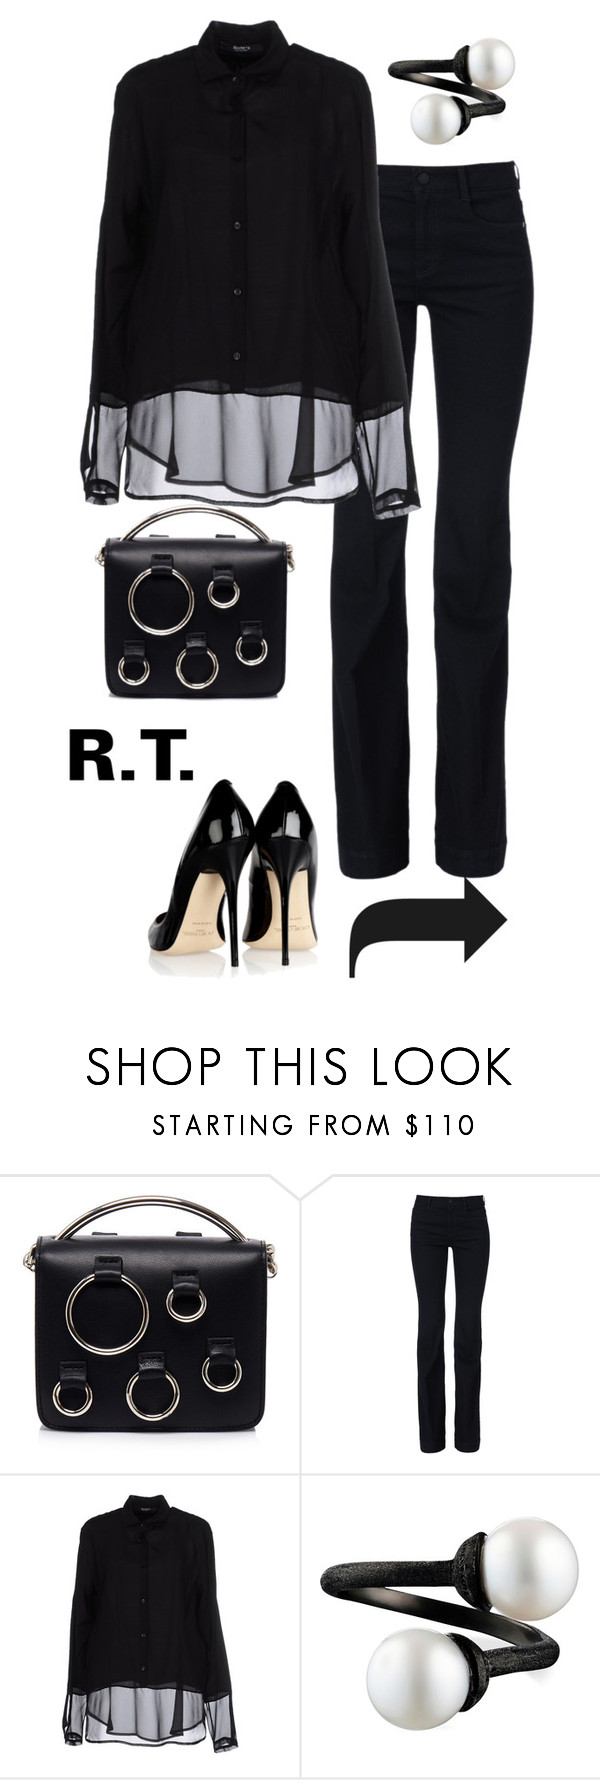 """""""R.T.-1338"""" by sopo-davituri ❤ liked on Polyvore featuring MSGM, STELLA McCARTNEY, Siste's and Jimmy Choo"""